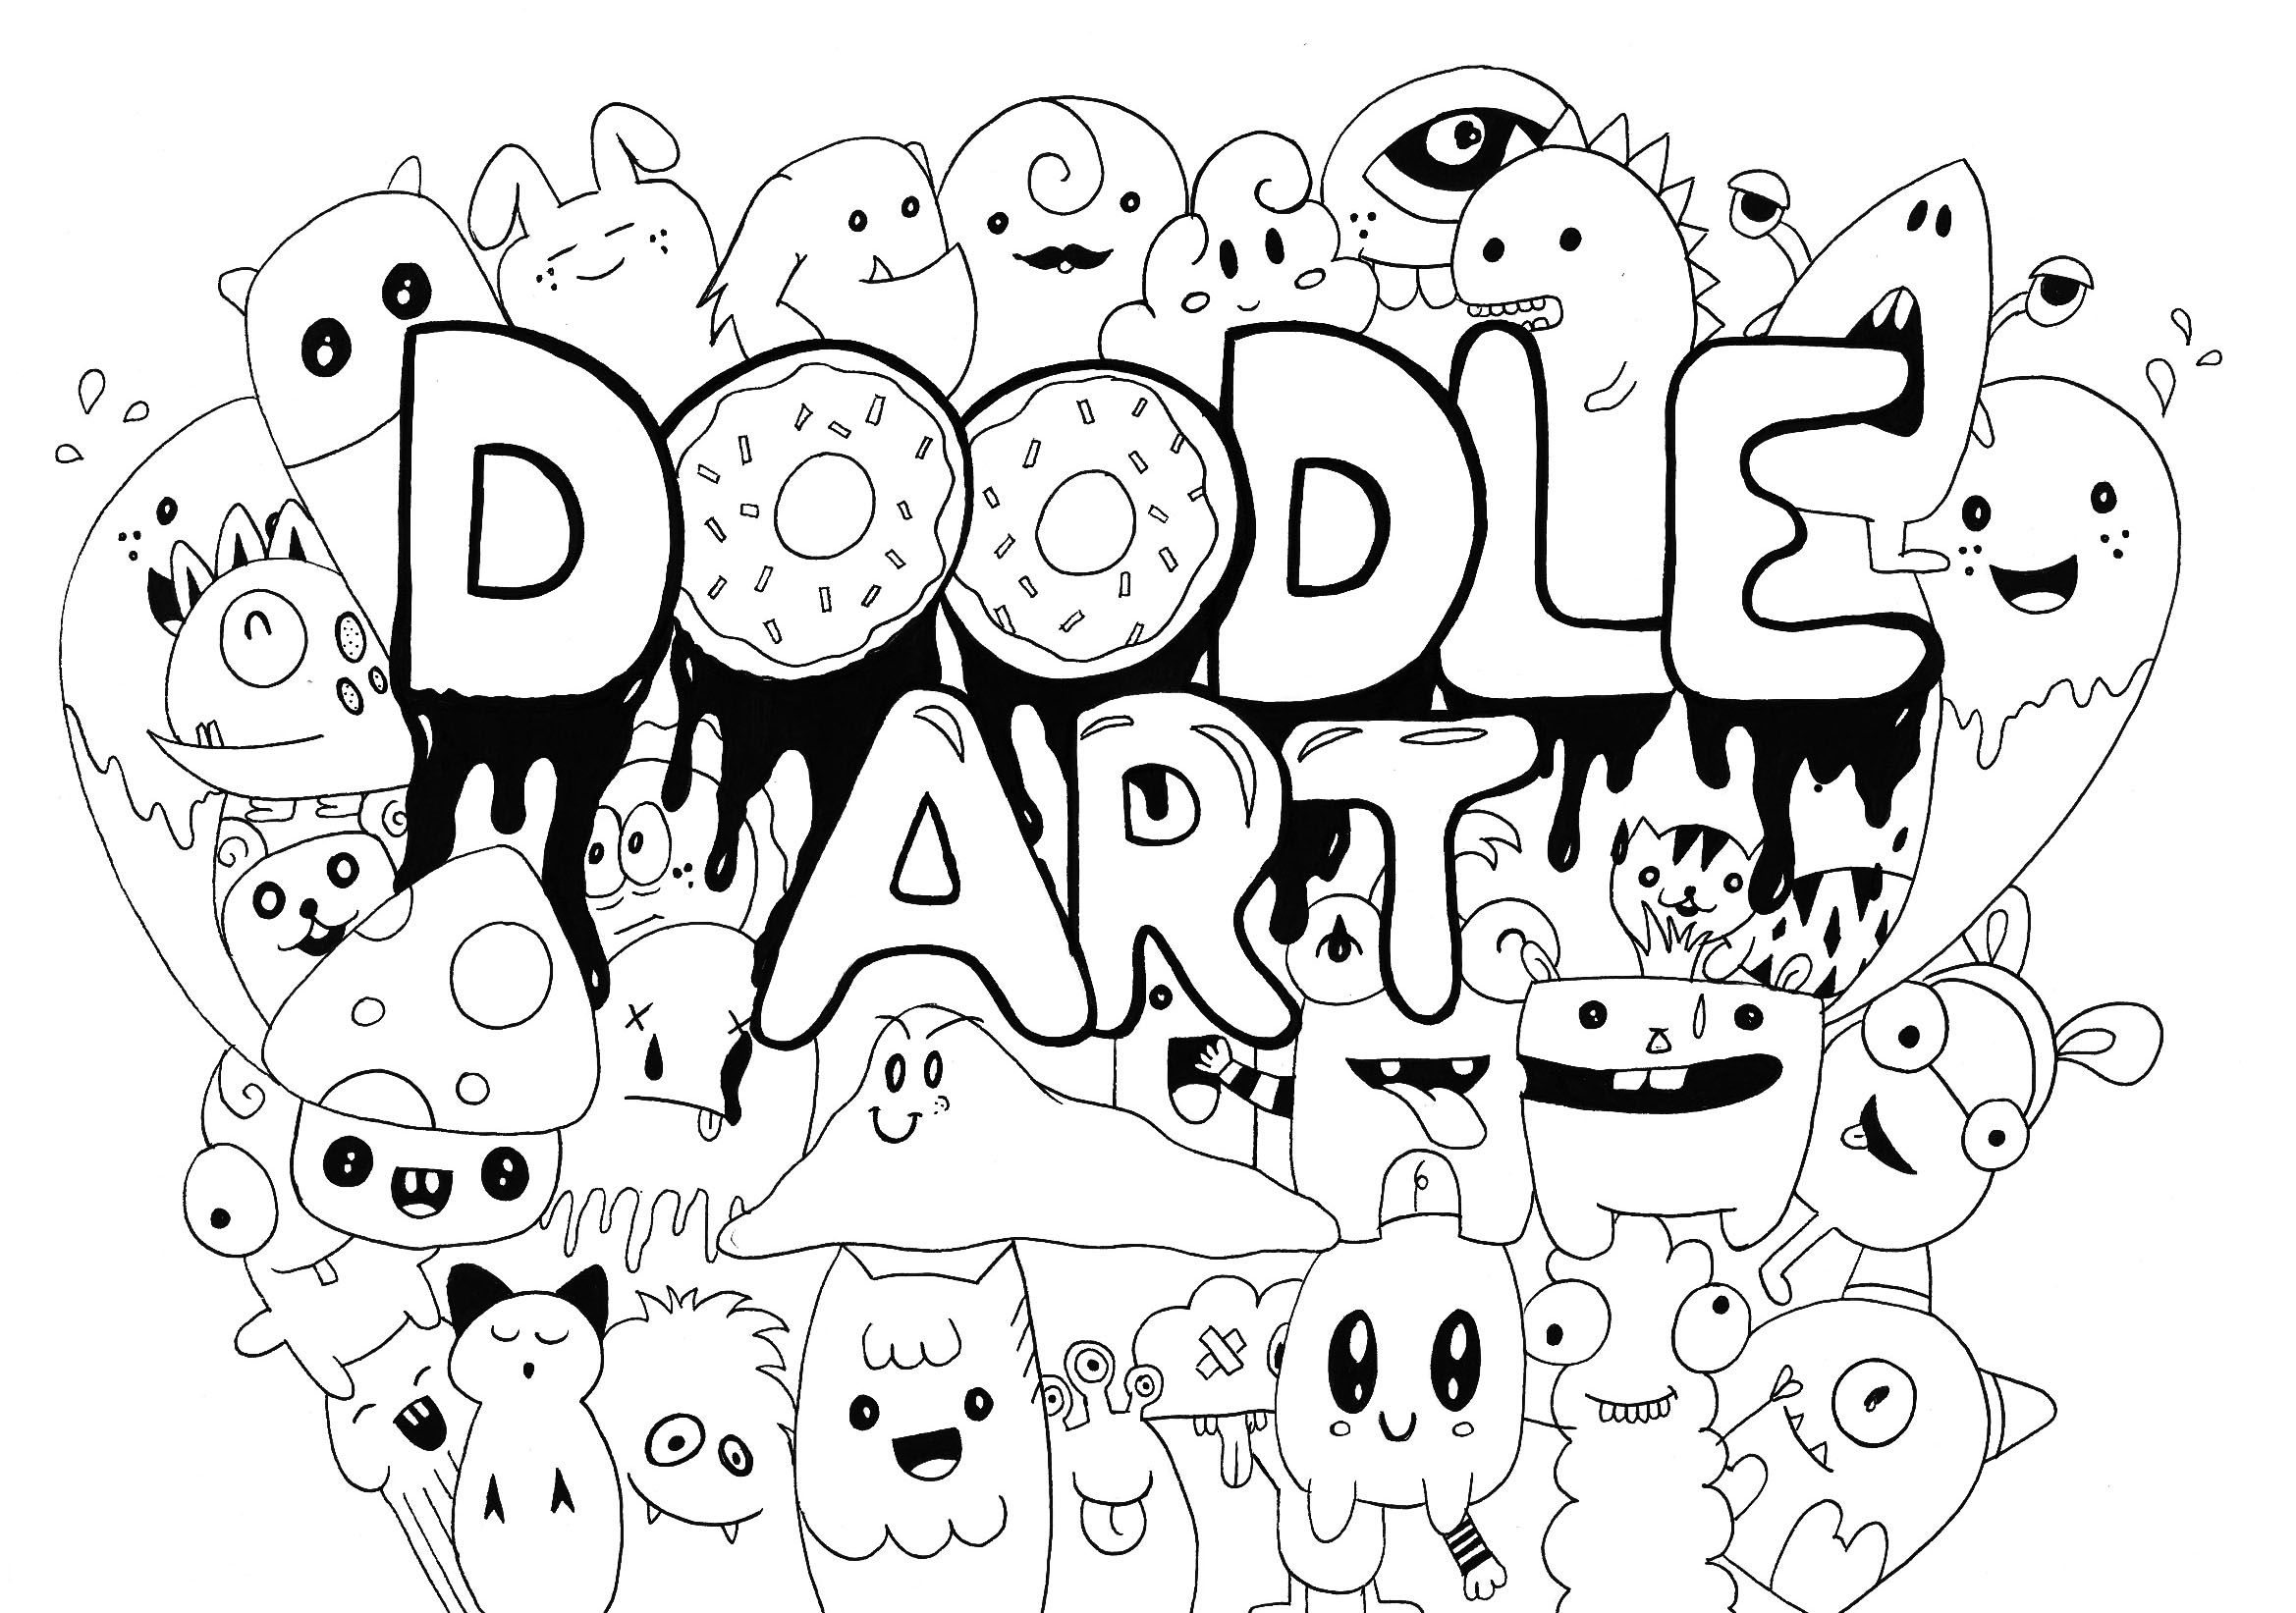 art pictures to color cinema doodle doodle art doodling adult coloring pages art color pictures to